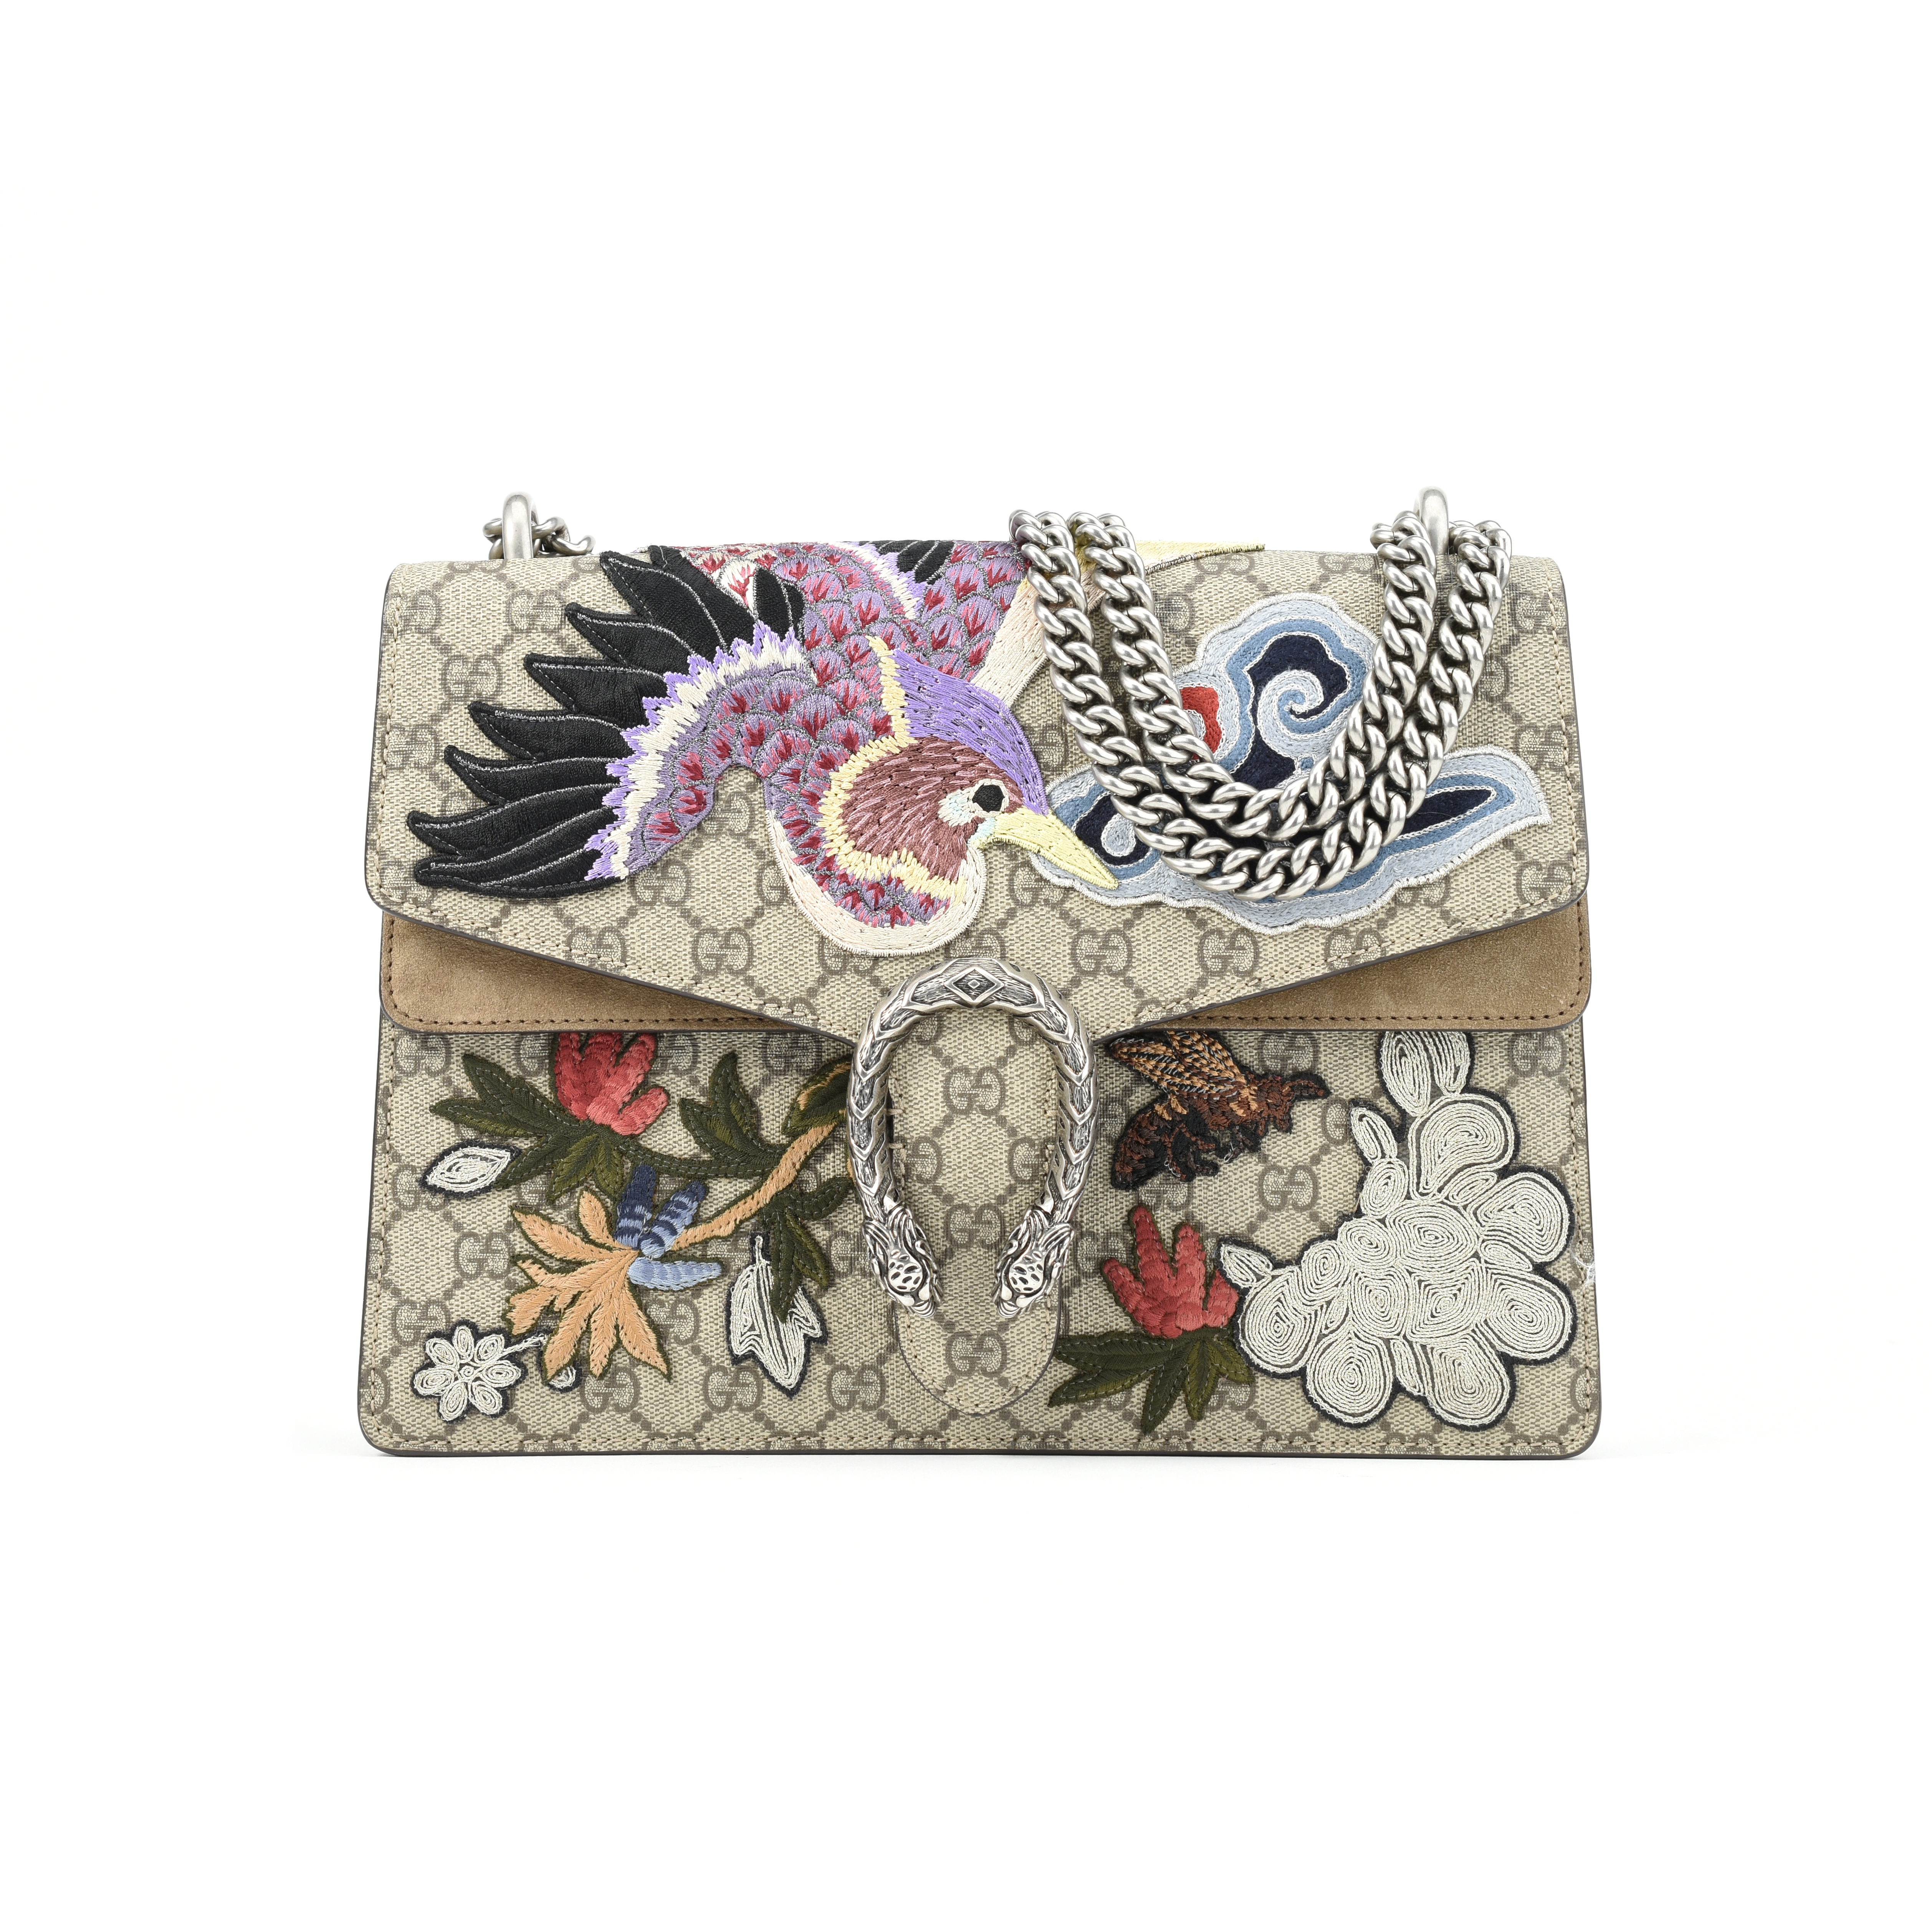 06807a2a7db0b0 Authentic Second Hand Gucci Dionysus Bird Embroidered Shoulder Bag  (PSS-200-00991) | THE FIFTH COLLECTION